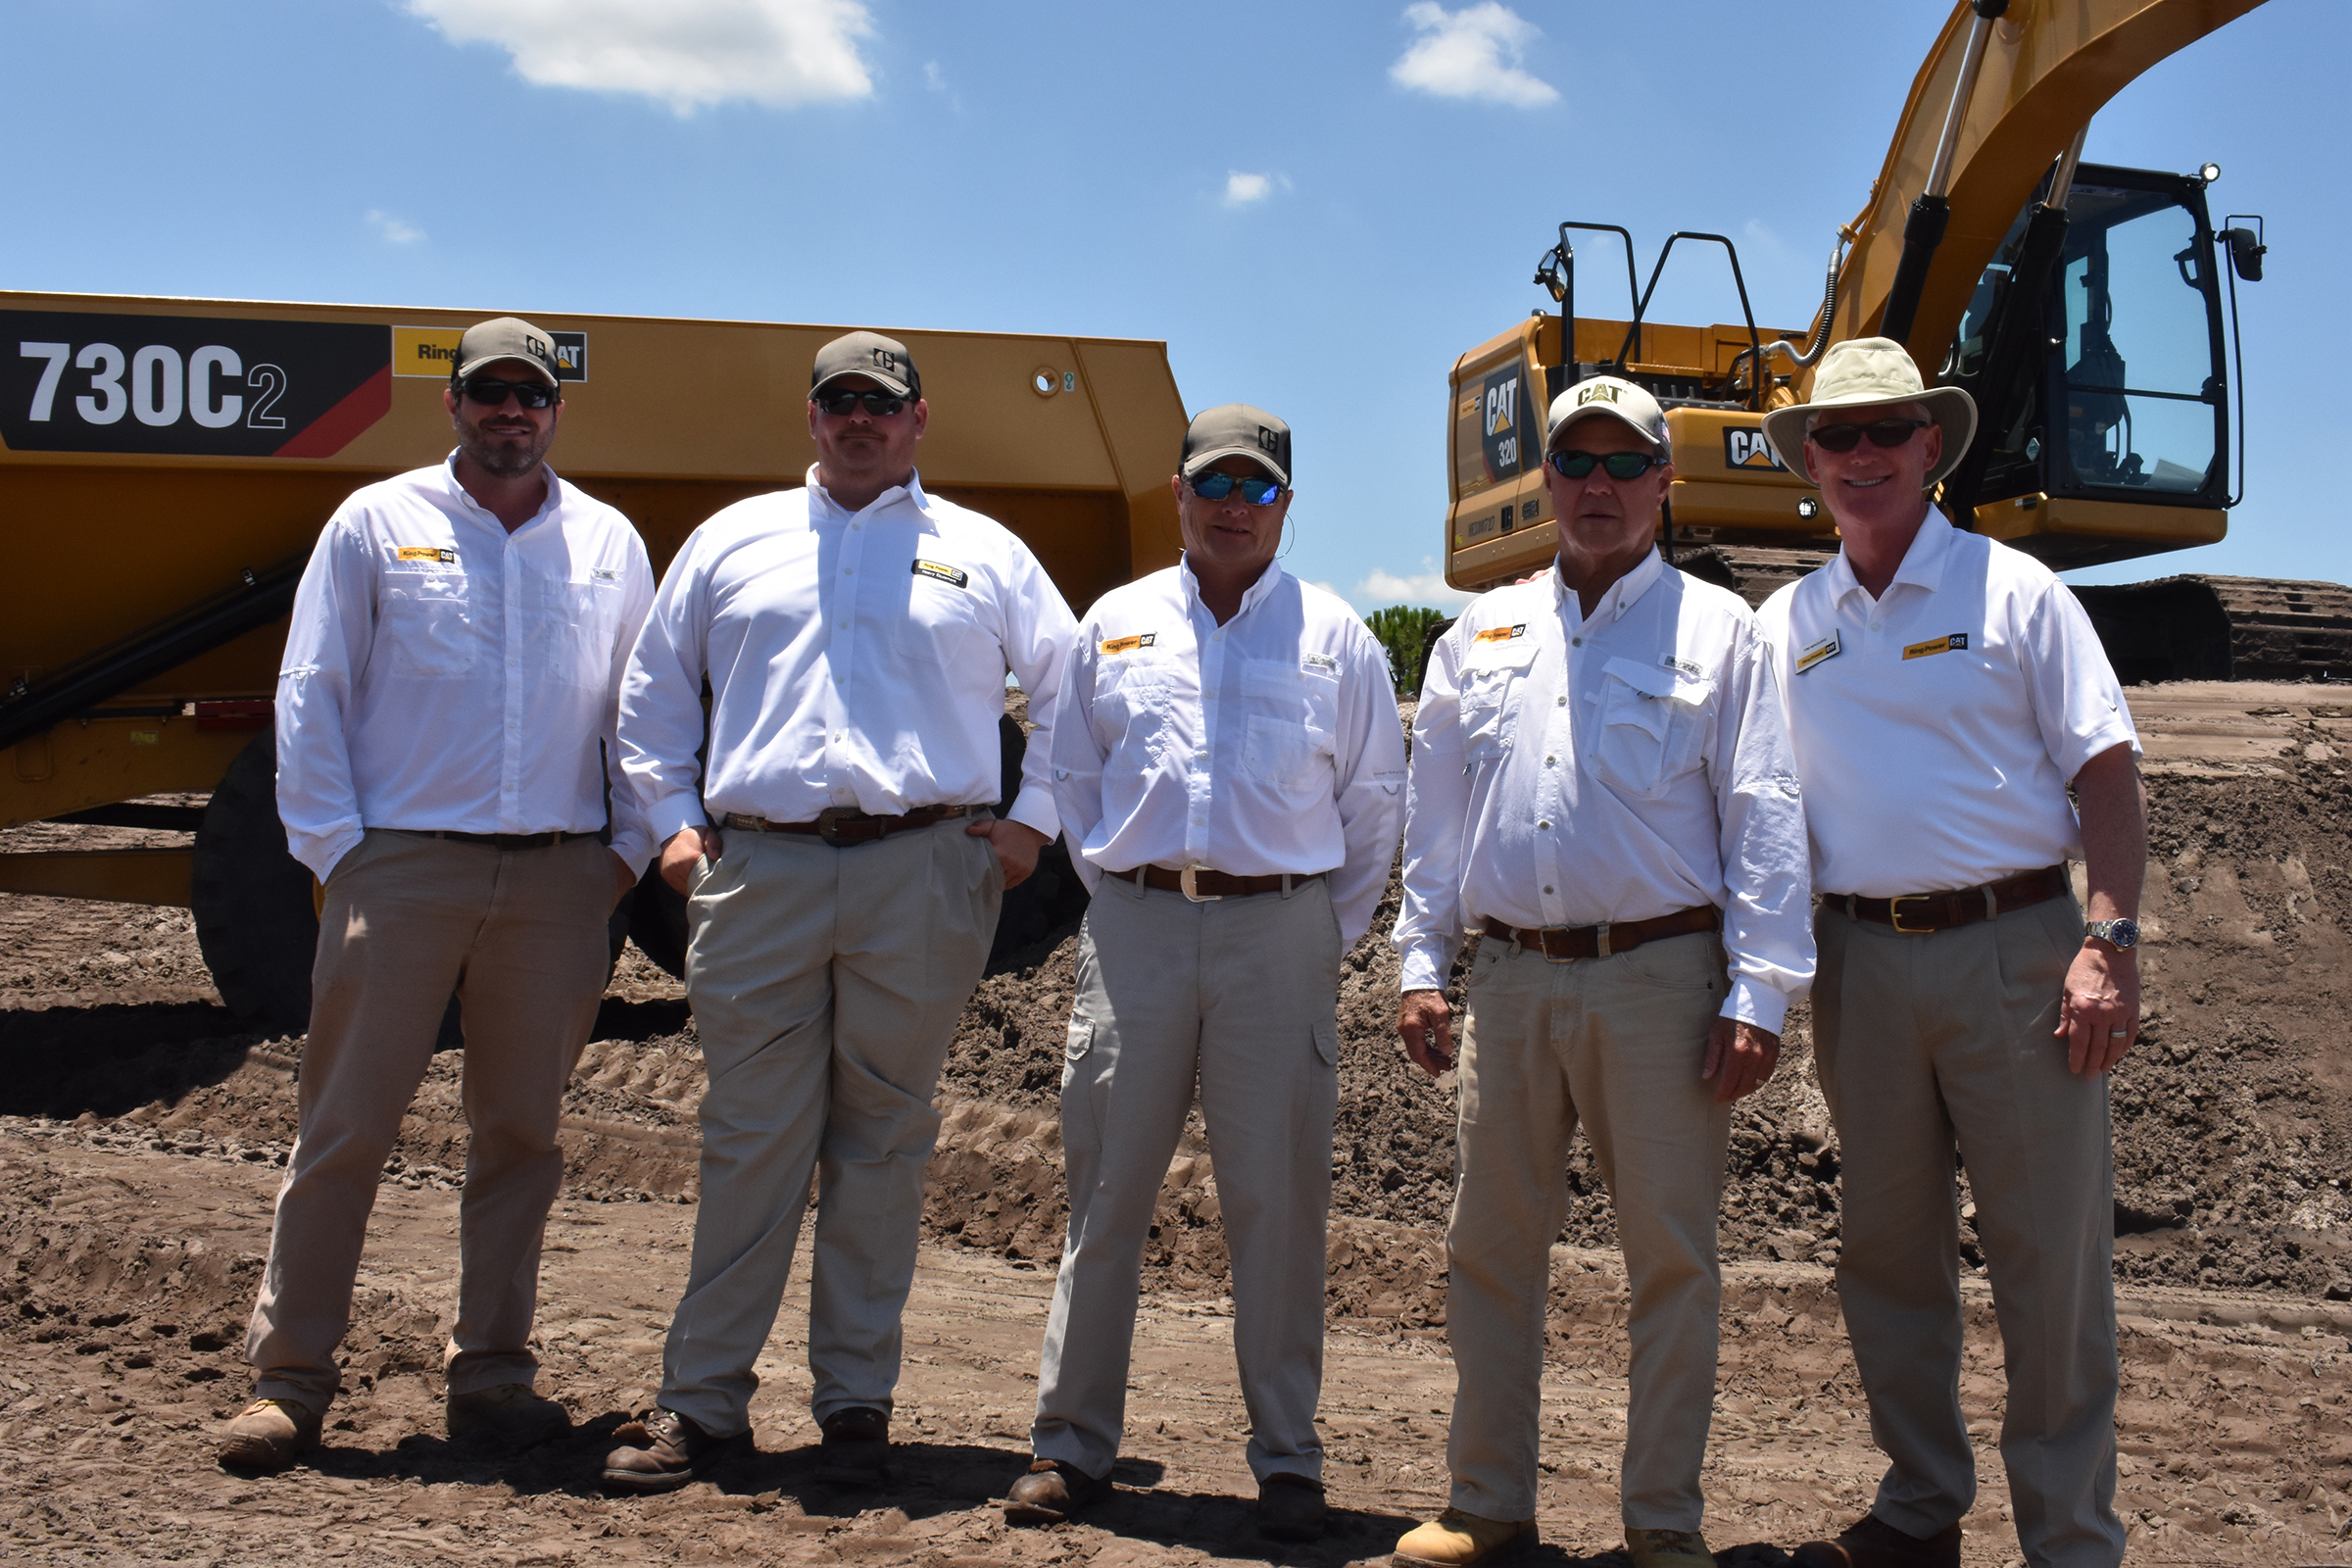 For Ring Power's team of demo operators, demo-ing equipment is just one part of the job.   Pictured left to right: Blake Conwell, Bryce McGuire, Mike Oster, Curt Loucks, and Tim Maguire (SVP, HE Director of New Sales)